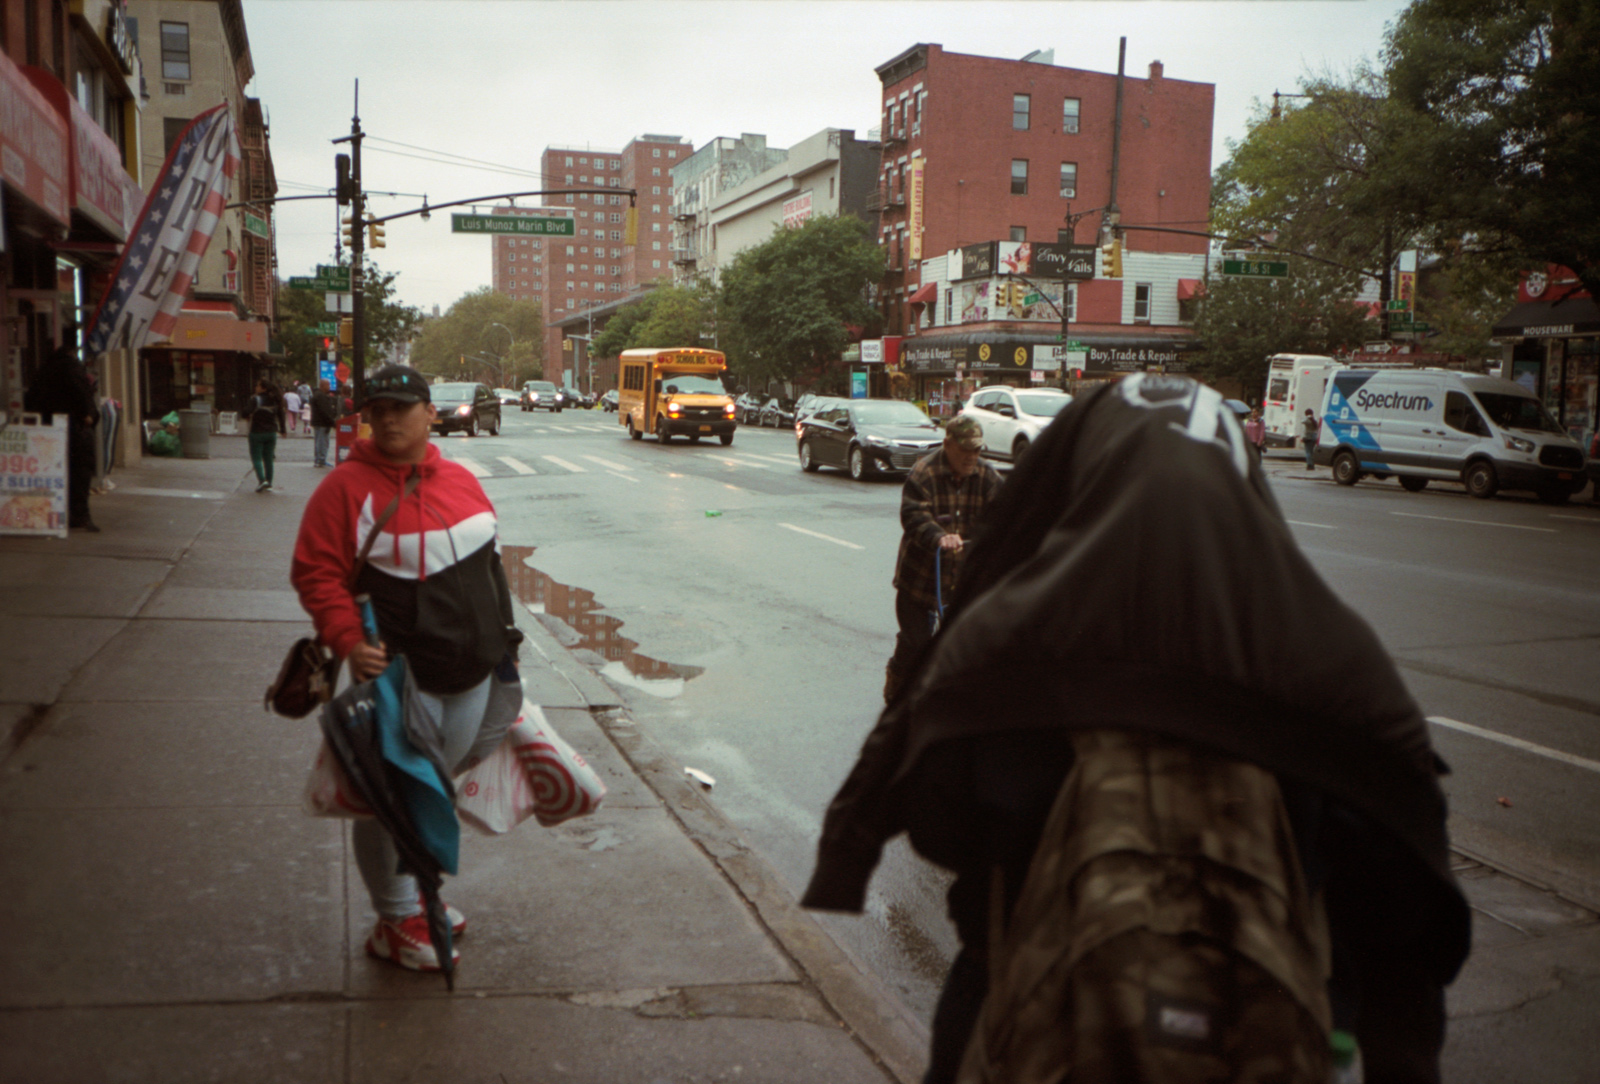 Under Cover, a woman hiding in East Harlem. Lonely New York Series. Photography By Ioannis Koussertari.